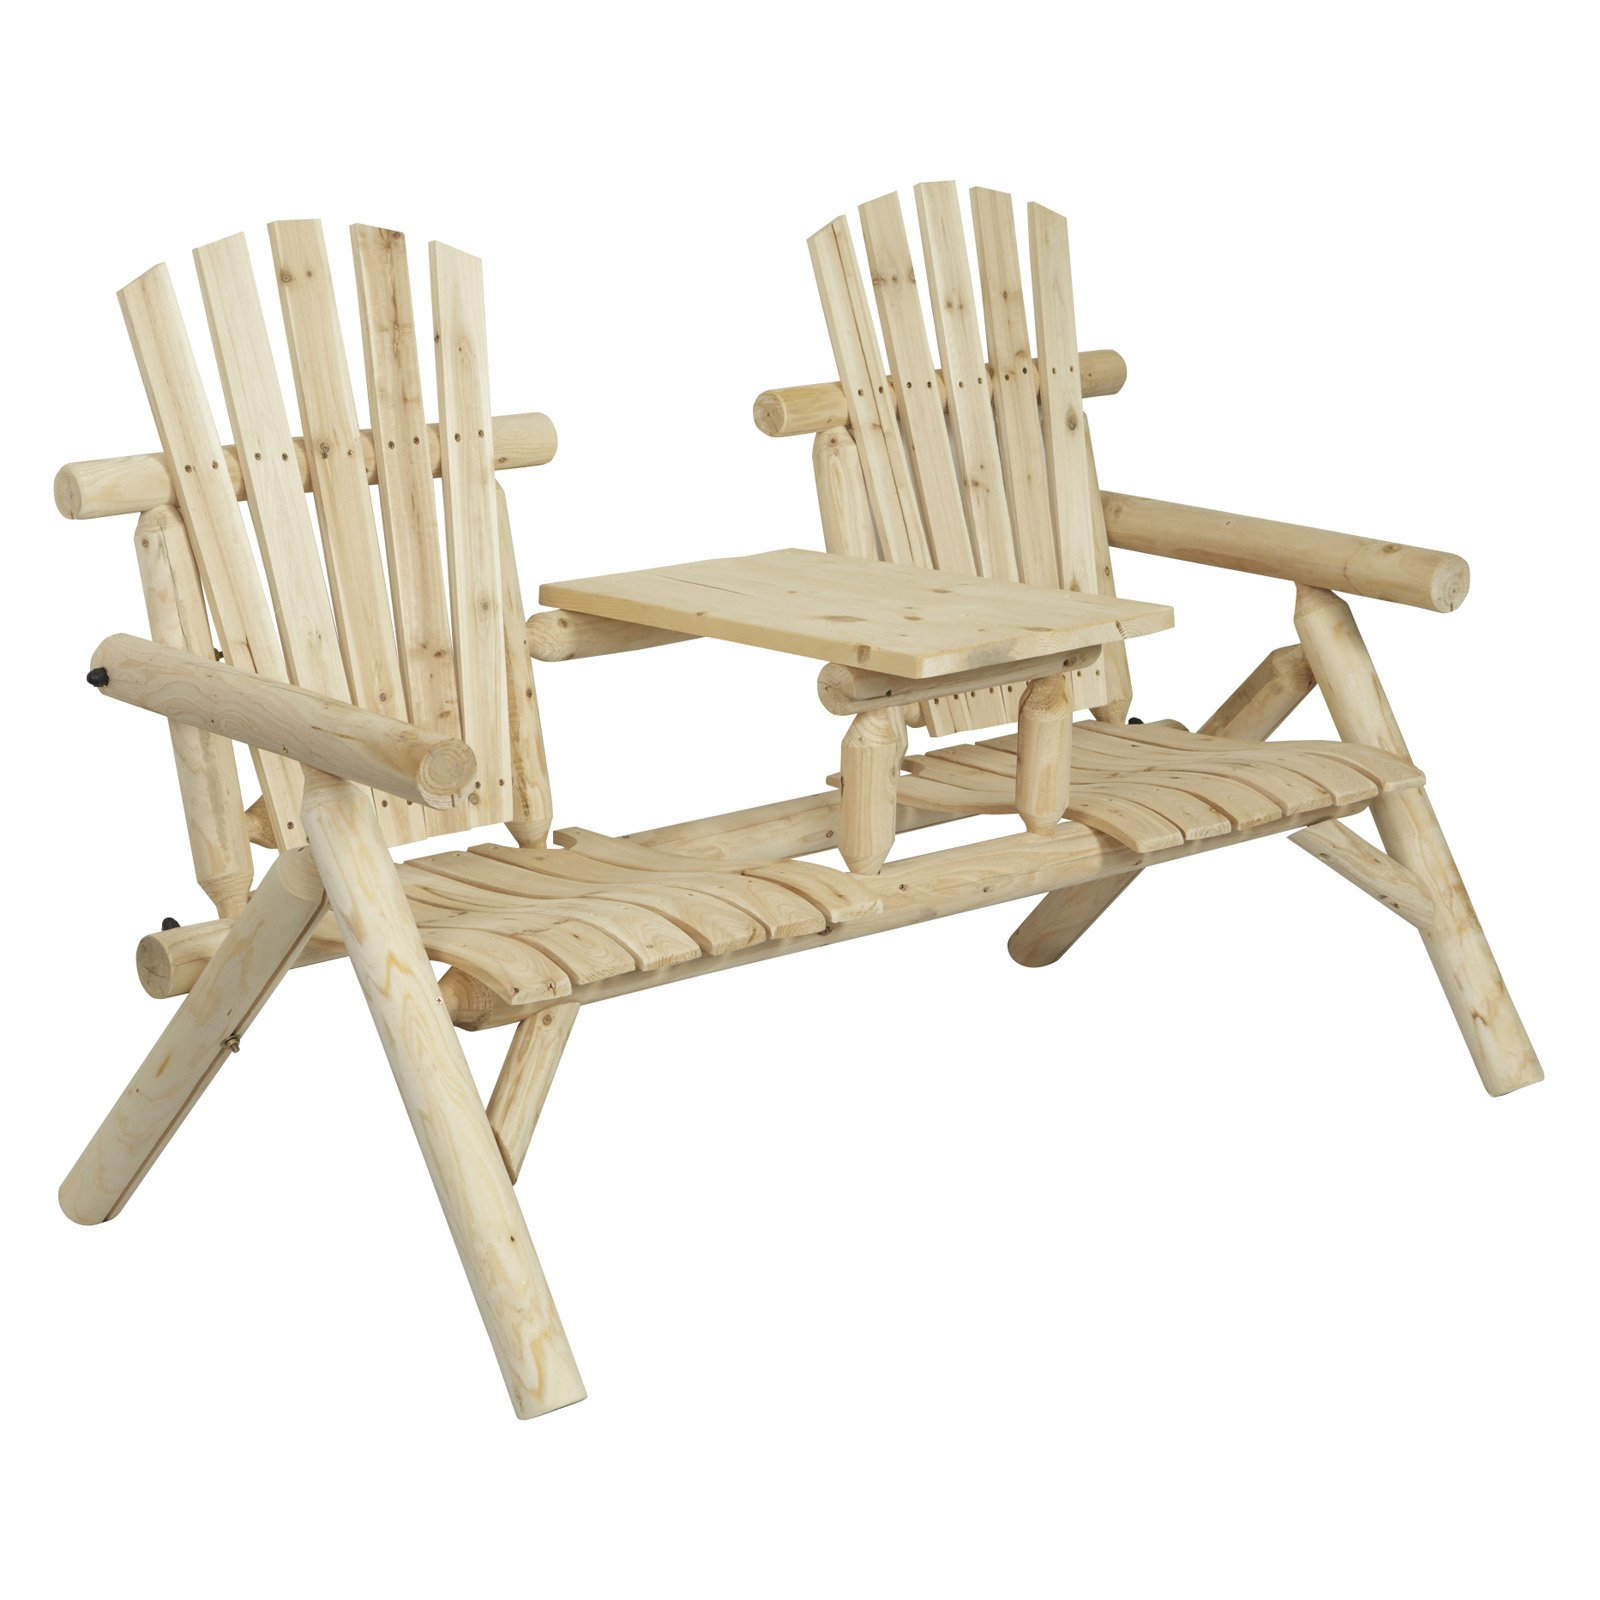 American Furniture Classics 2-Seat Bench, Natural Finish